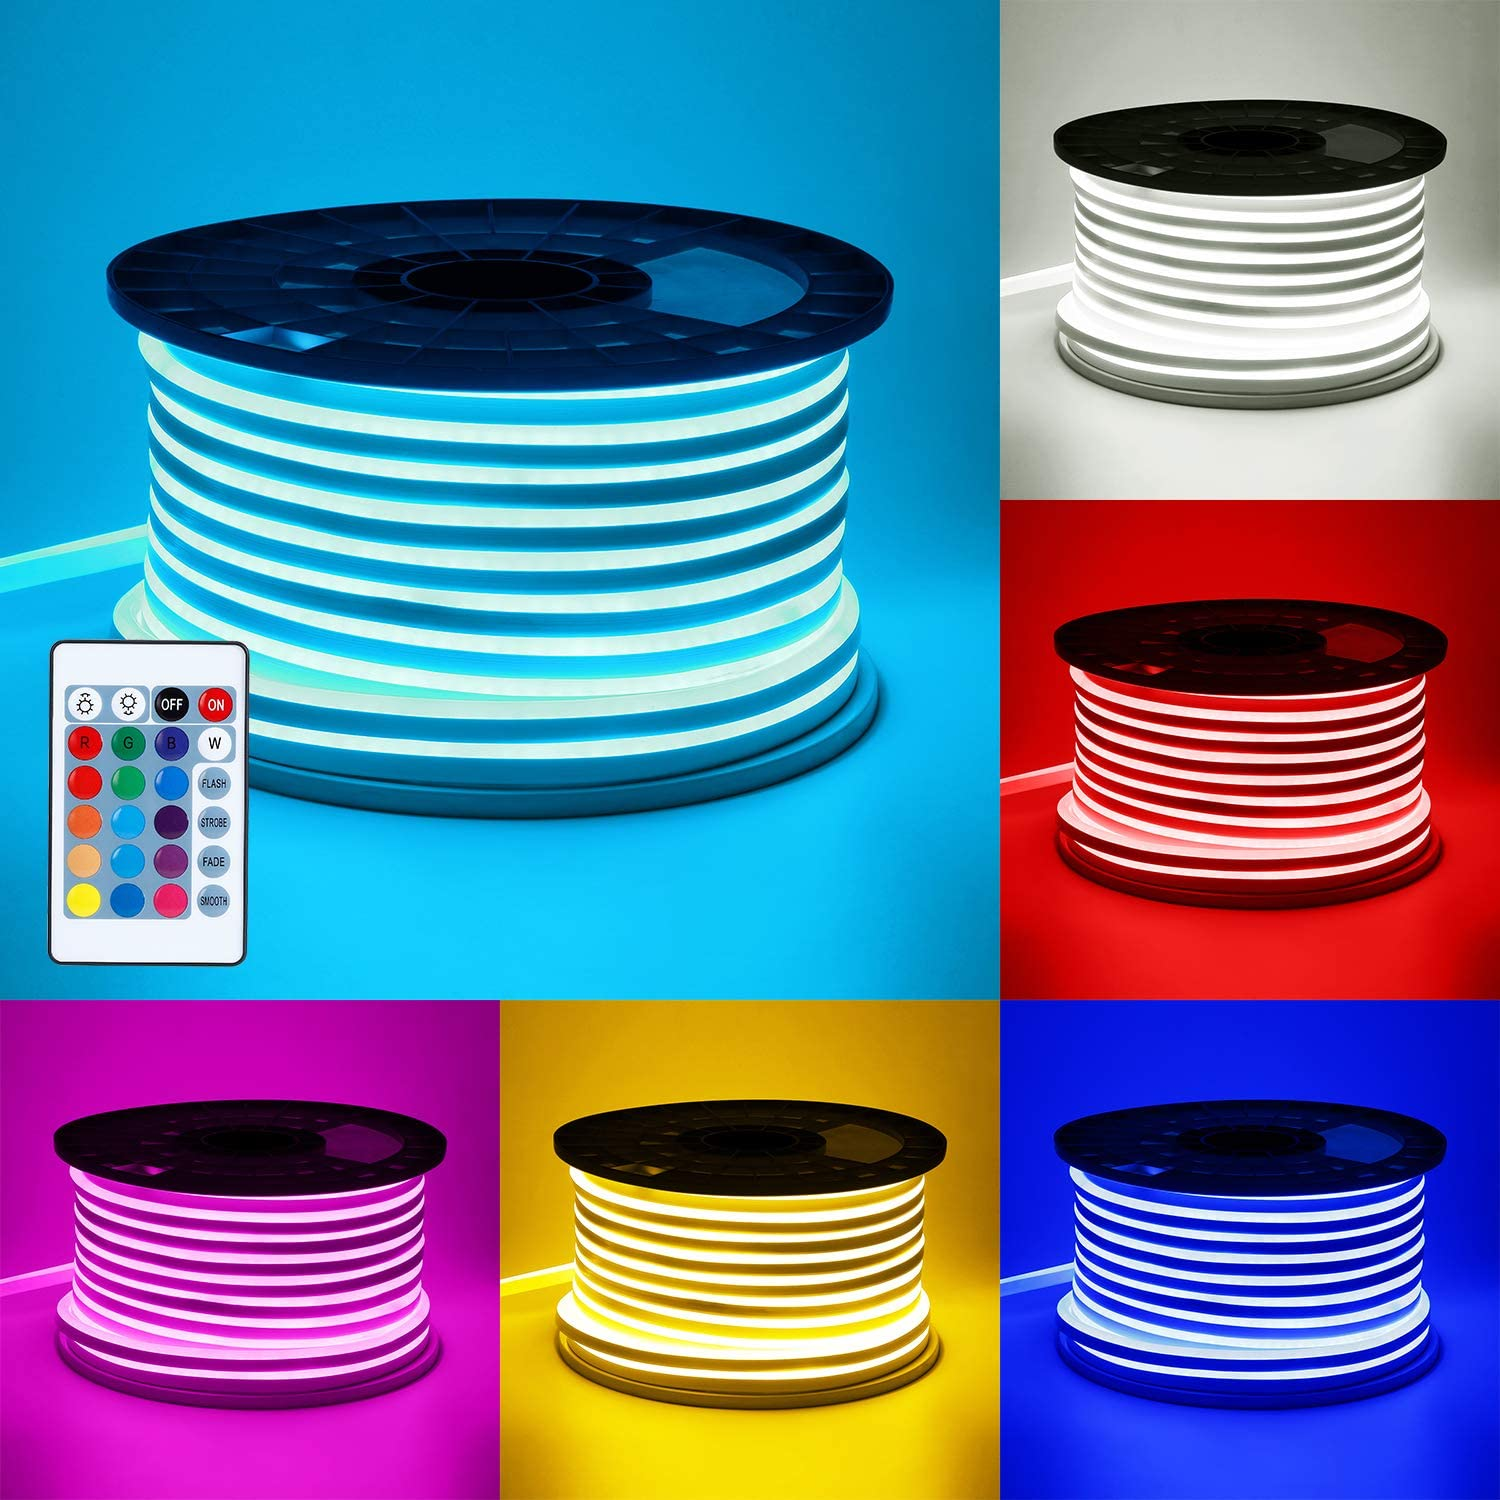 TORCHSTAR 65.6ft RGB LED Neon Rope Light, 18 LEDs ft, Waterproof DIY Strip Light, All Necessary Accessories Included, Indoor Outdoor Decorative Lighting for Home, Patio, Garden